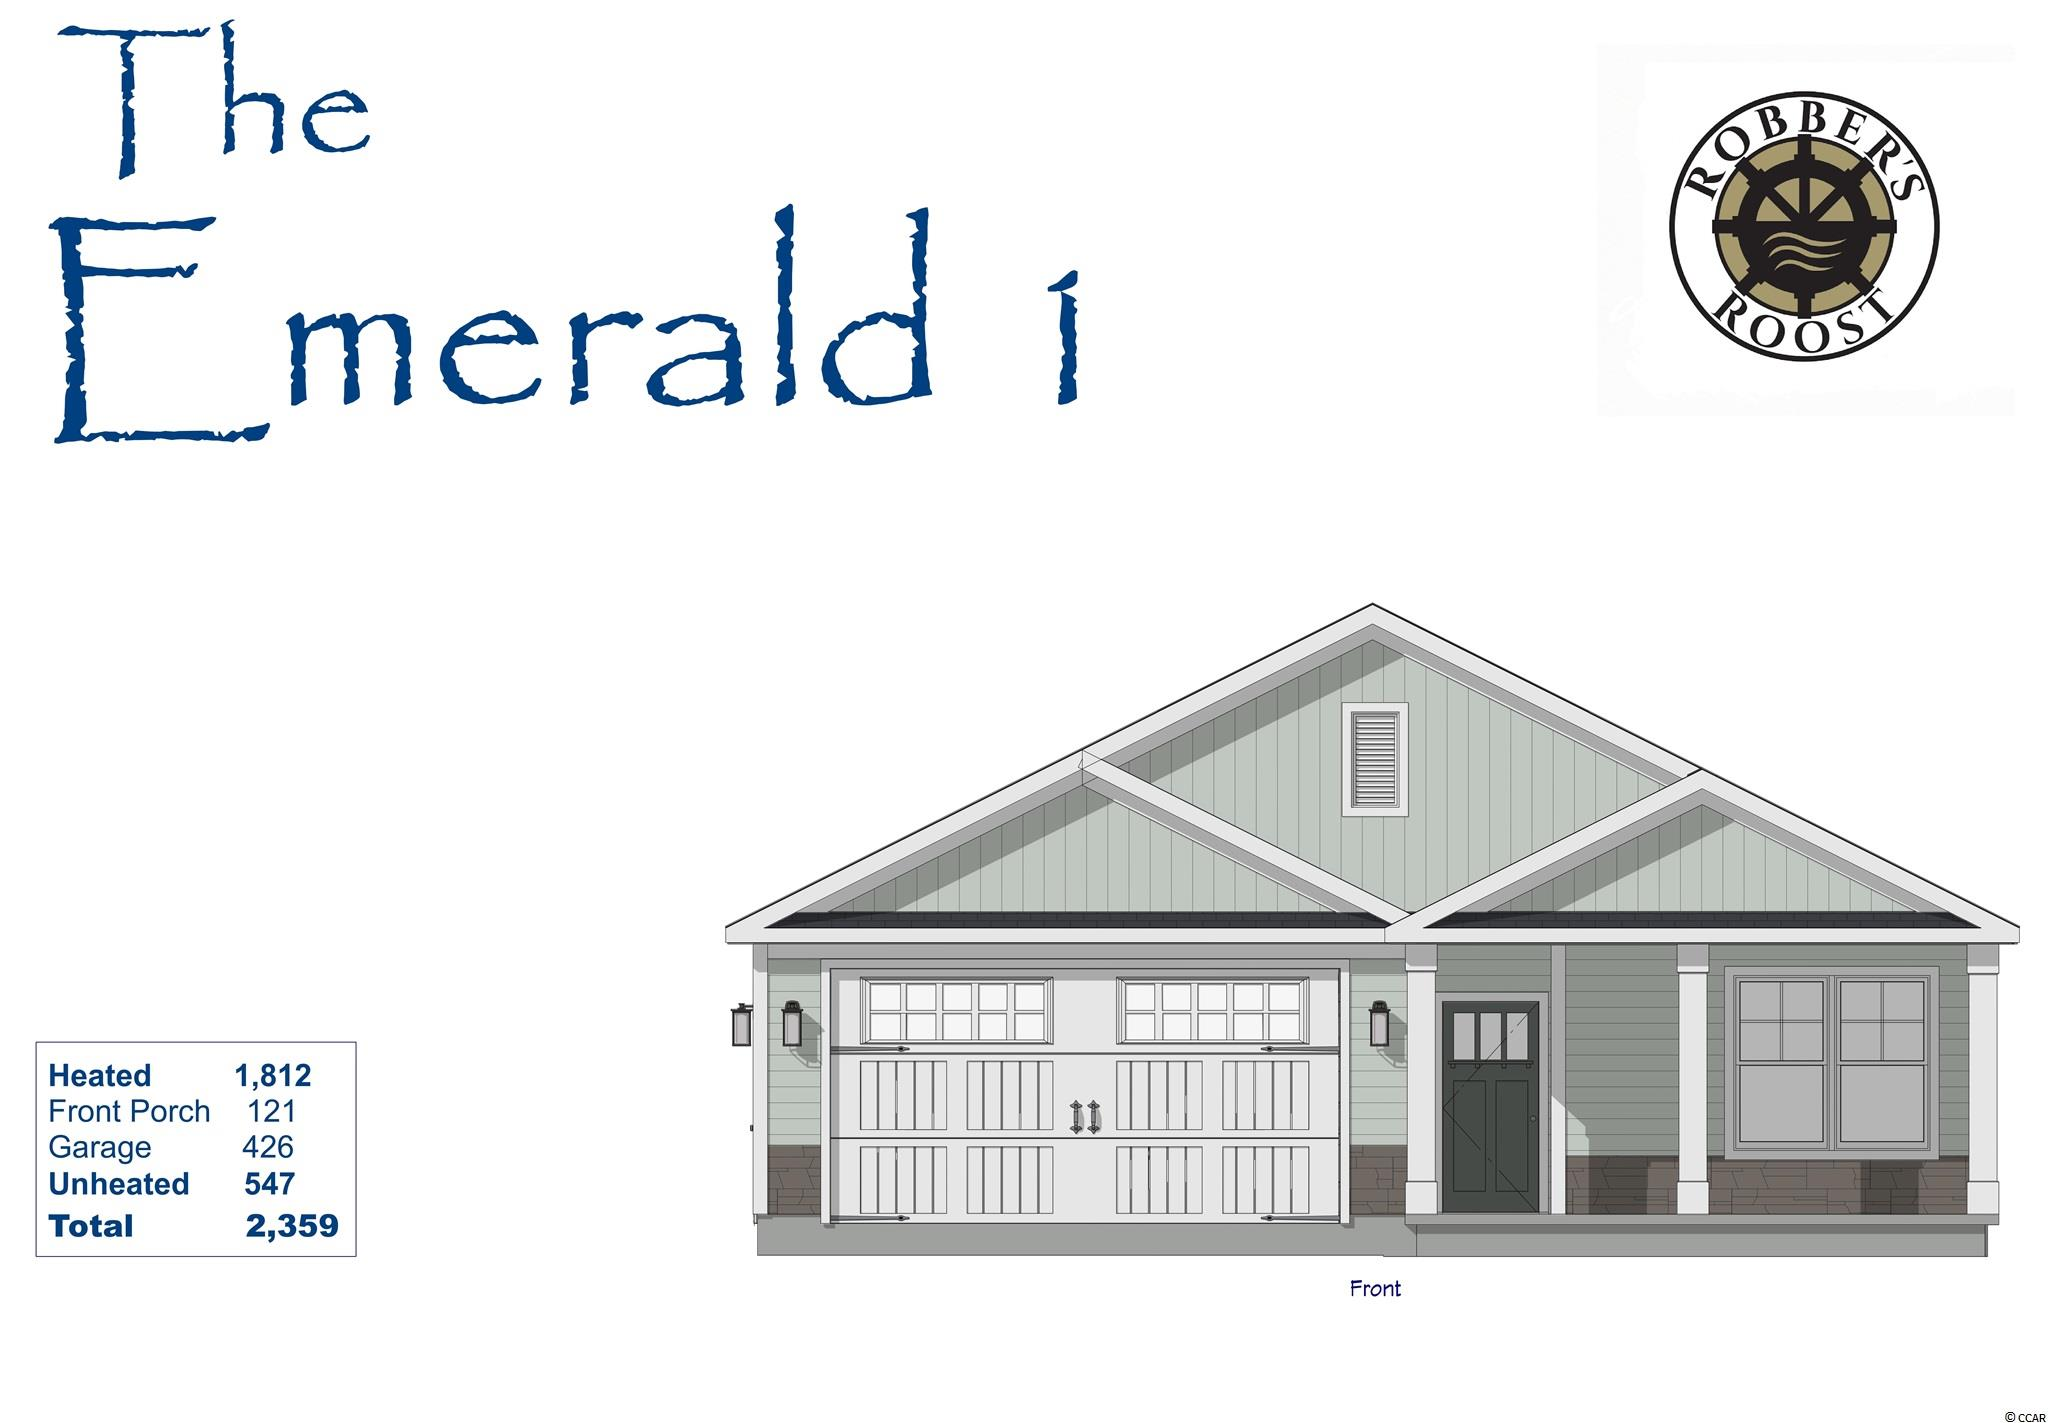 Emerald 1 Model new construction 3br/2ba one level home with an office, a rear covered porch &  2 car garage in Robber's Roost!  This great floor plan with 1,800 Htd Sqft. features LVP flooring, Owner's Suite, open kitchen with stainless appliances & Granite countertops, living/dining room, laundry room, 2 more bedrooms, an office, laundry room, front & rear porches!  Energy savings features include Low E windows, 14 Sear HVAC, Digital WiFi Programmable Thermostats, Tankless Gas Hot Water Heater & 200 Amp electrical service, security system with keyless entry. Too much to mention so come see for yourself! Additionally, Robber's Roost at North Myrtle Beach is a natural gas community east of Hwy 17 with a community pool coming for the 2021 swimming season & is located within walking, bicycle or golf cart distance to Tilghman Beach, the beautiful Atlantic Ocean w/ 60 miles of white sandy beaches and is close to Coastal North Town Center (shopping, dining, beauty, pets), Shag dance capital Main St., golf, boating/fishing in the ICW, entertainment and all the amenities of living in Coastal South Carolina. Whether a primary residence or your vacation get-a-way, don't miss ~ come live the dream!